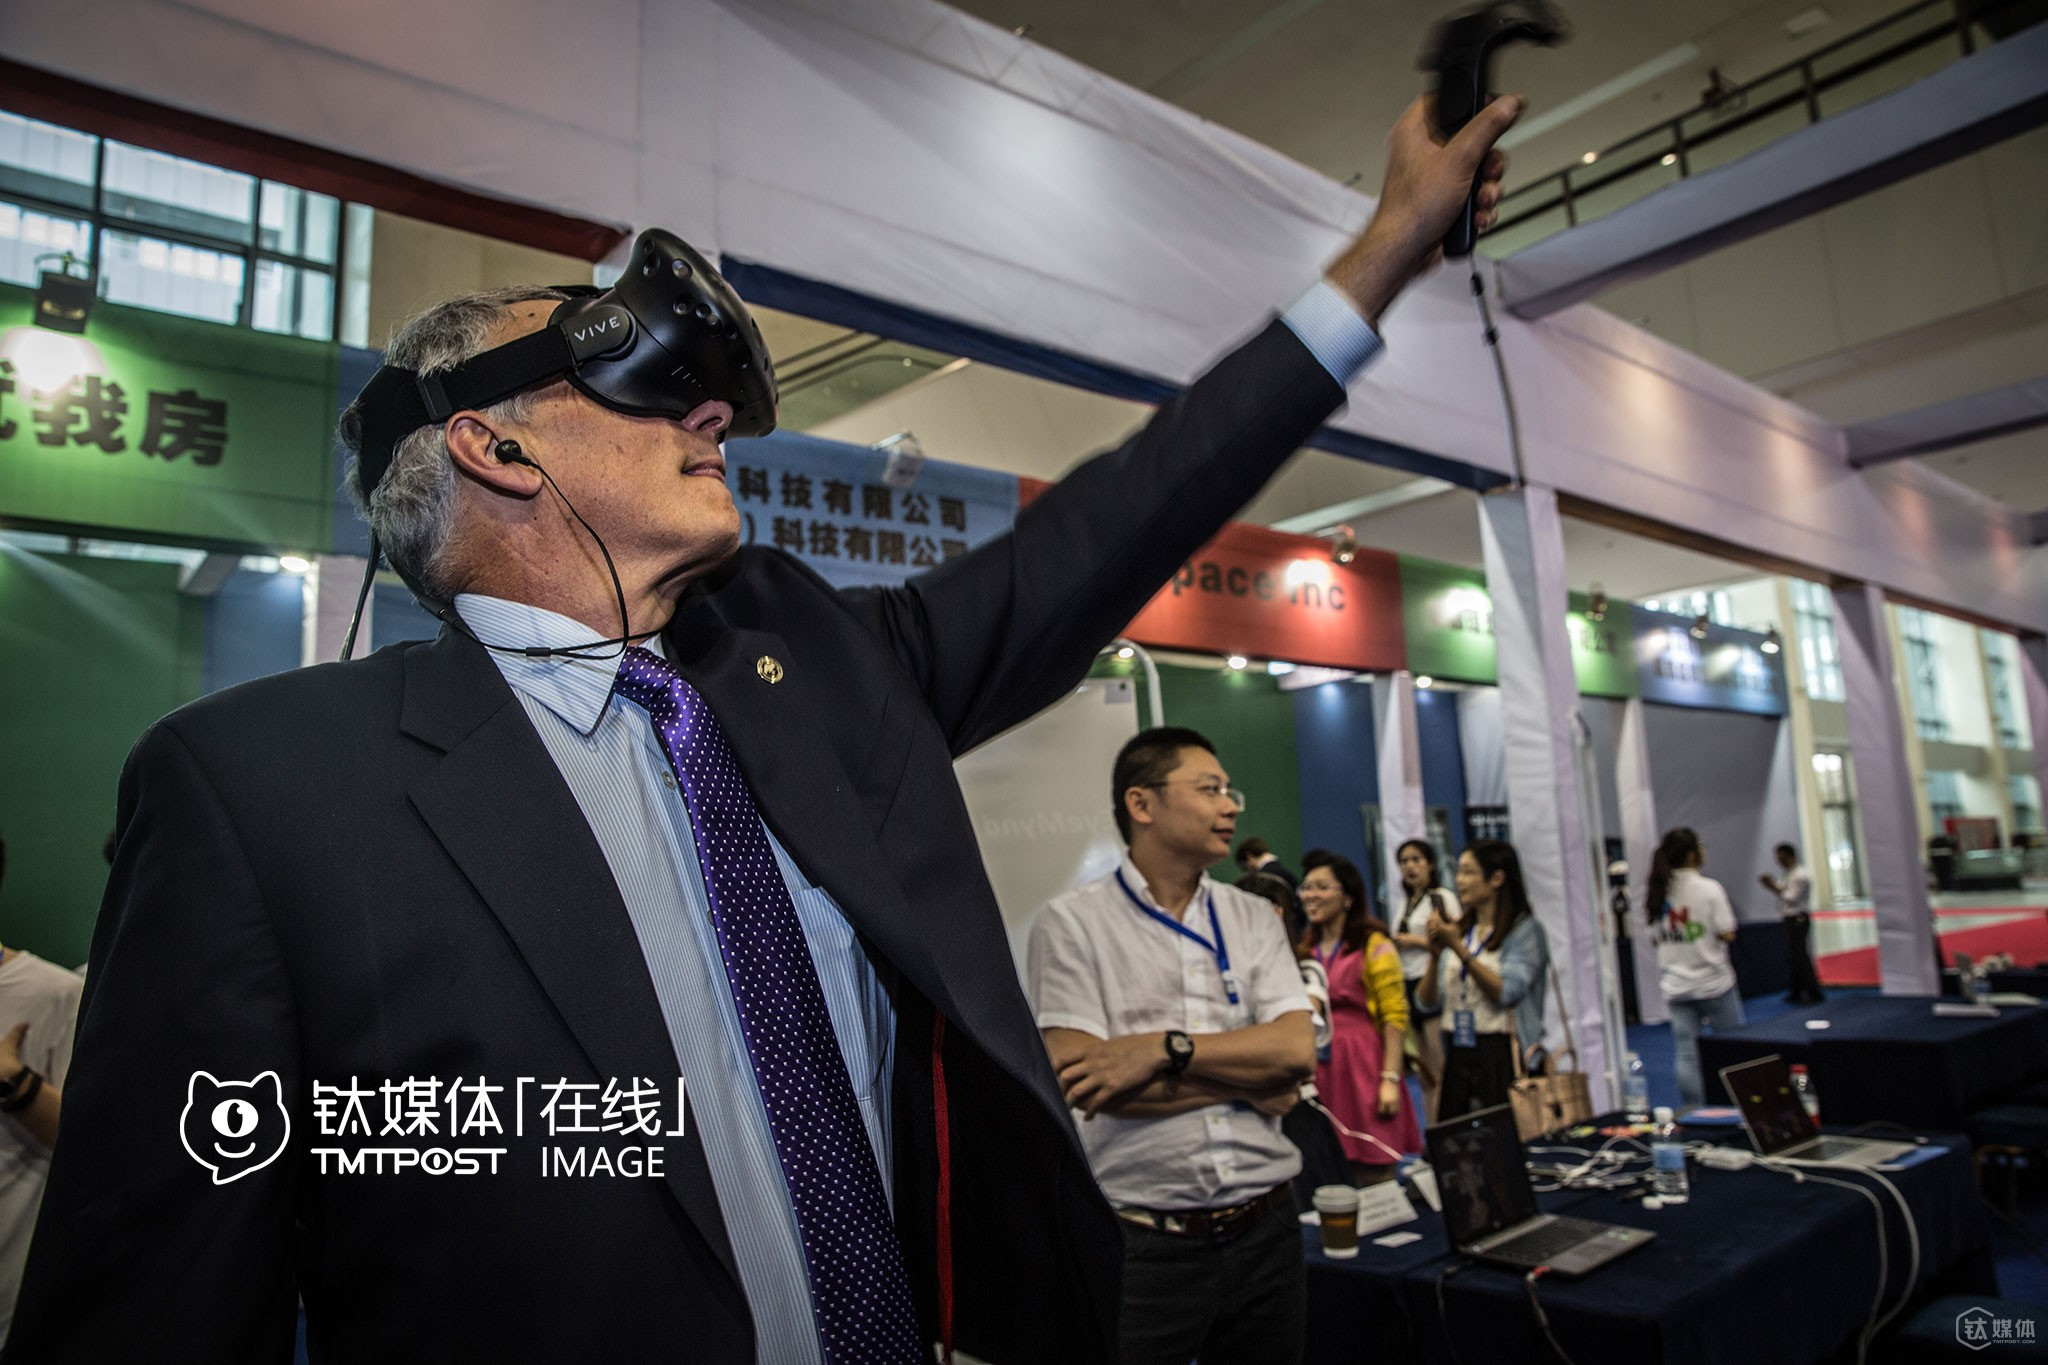 On a VR Summit in Chongqing, Mr. Michael tried playing a VR game. He didn't play any VR game before the visit.